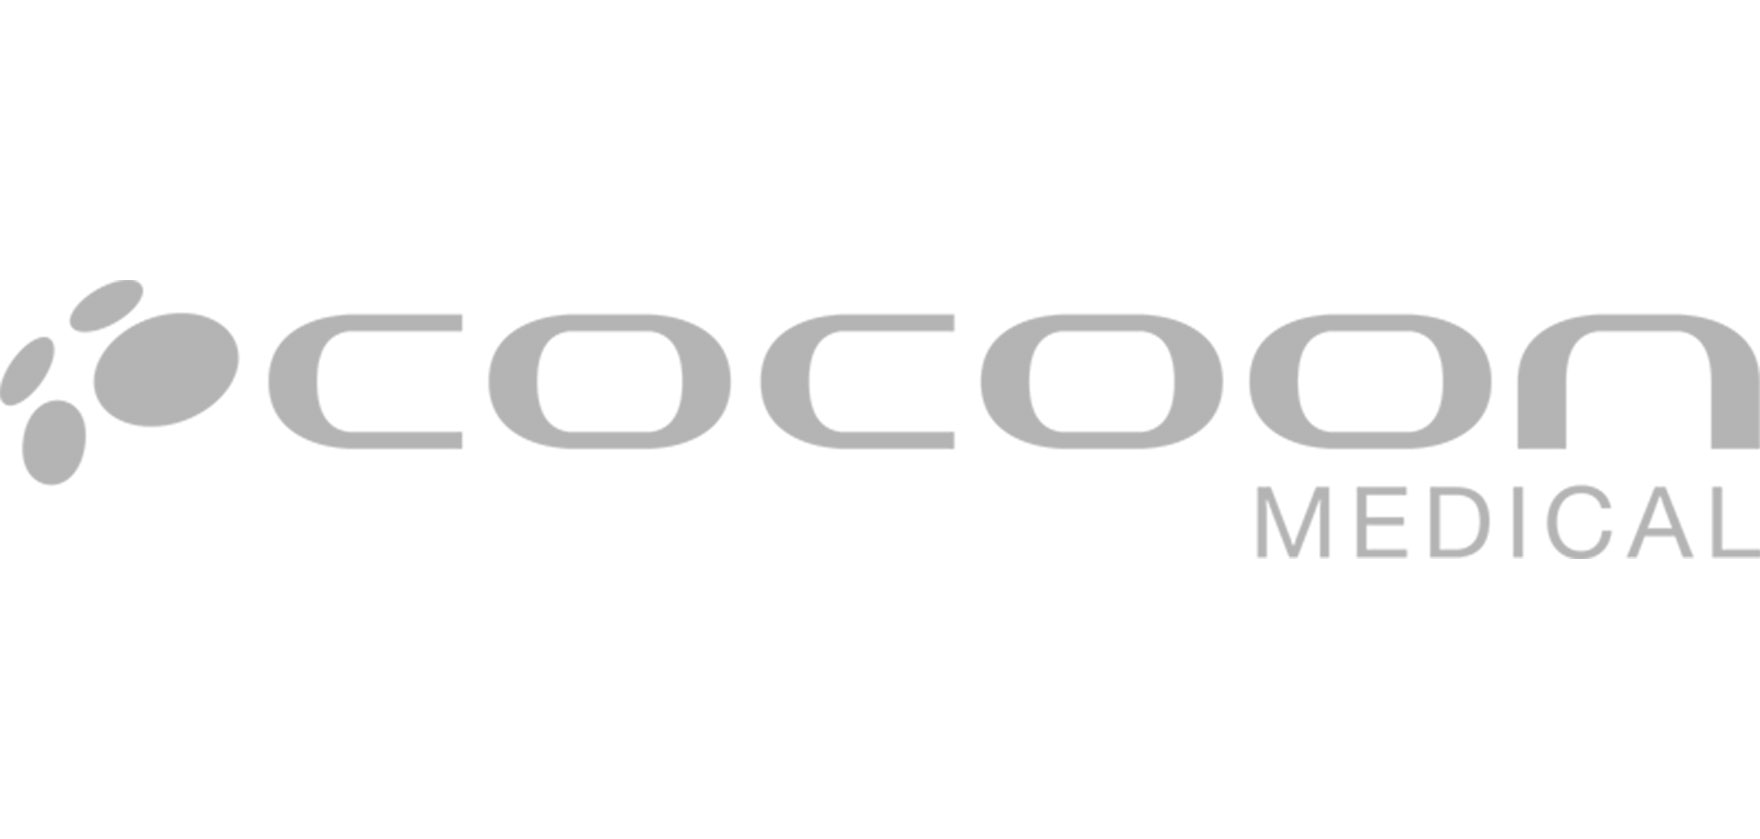 cocoon medical logo ok